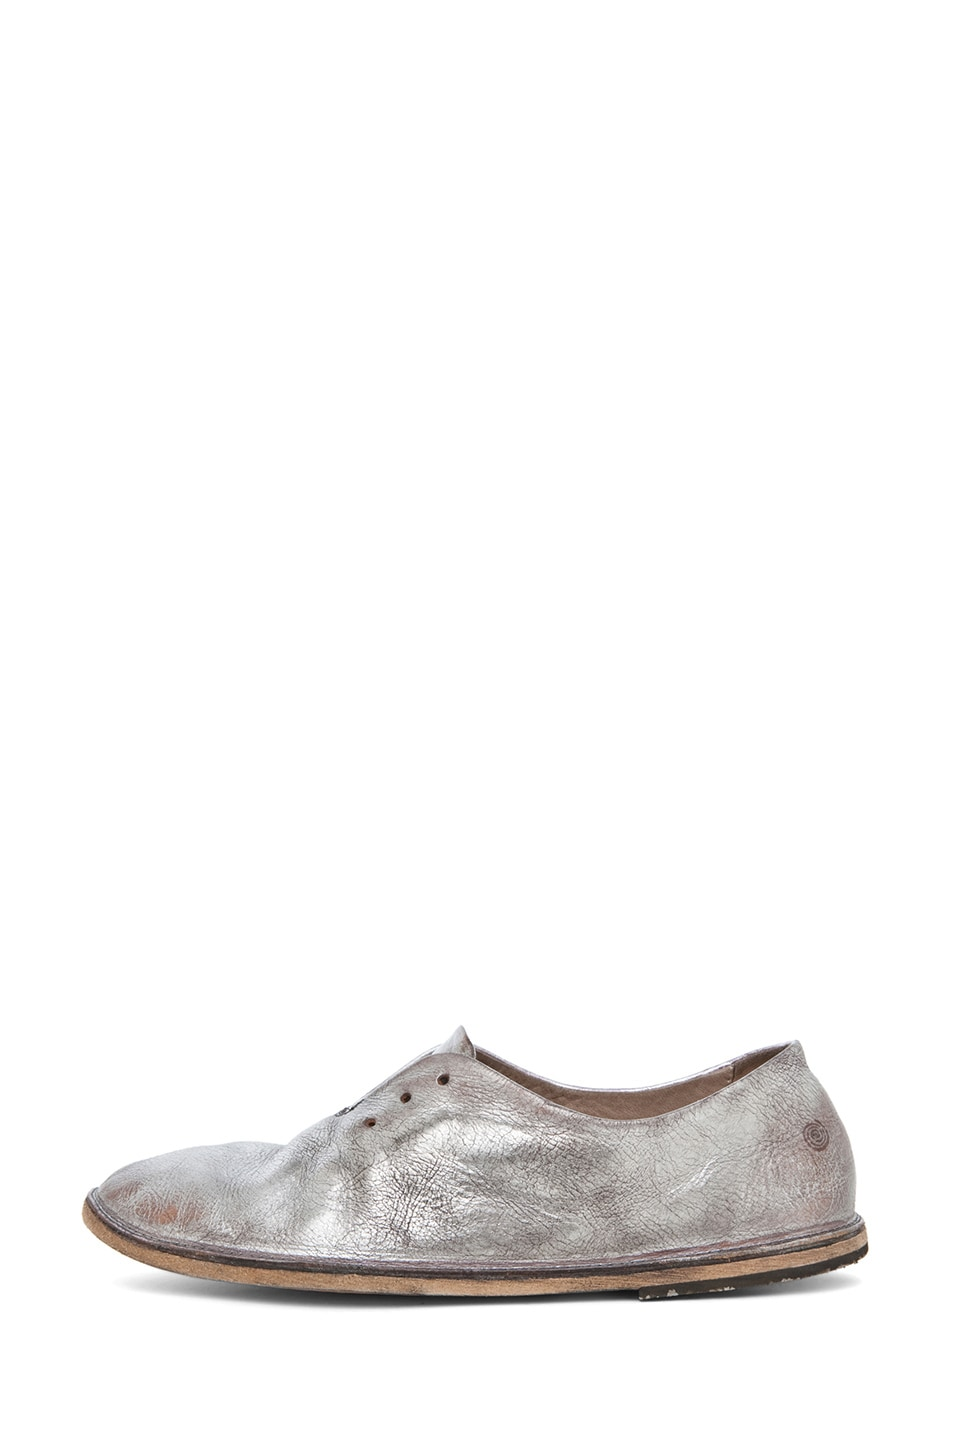 Image 1 of Marsell Strasacco Loafer in Silver